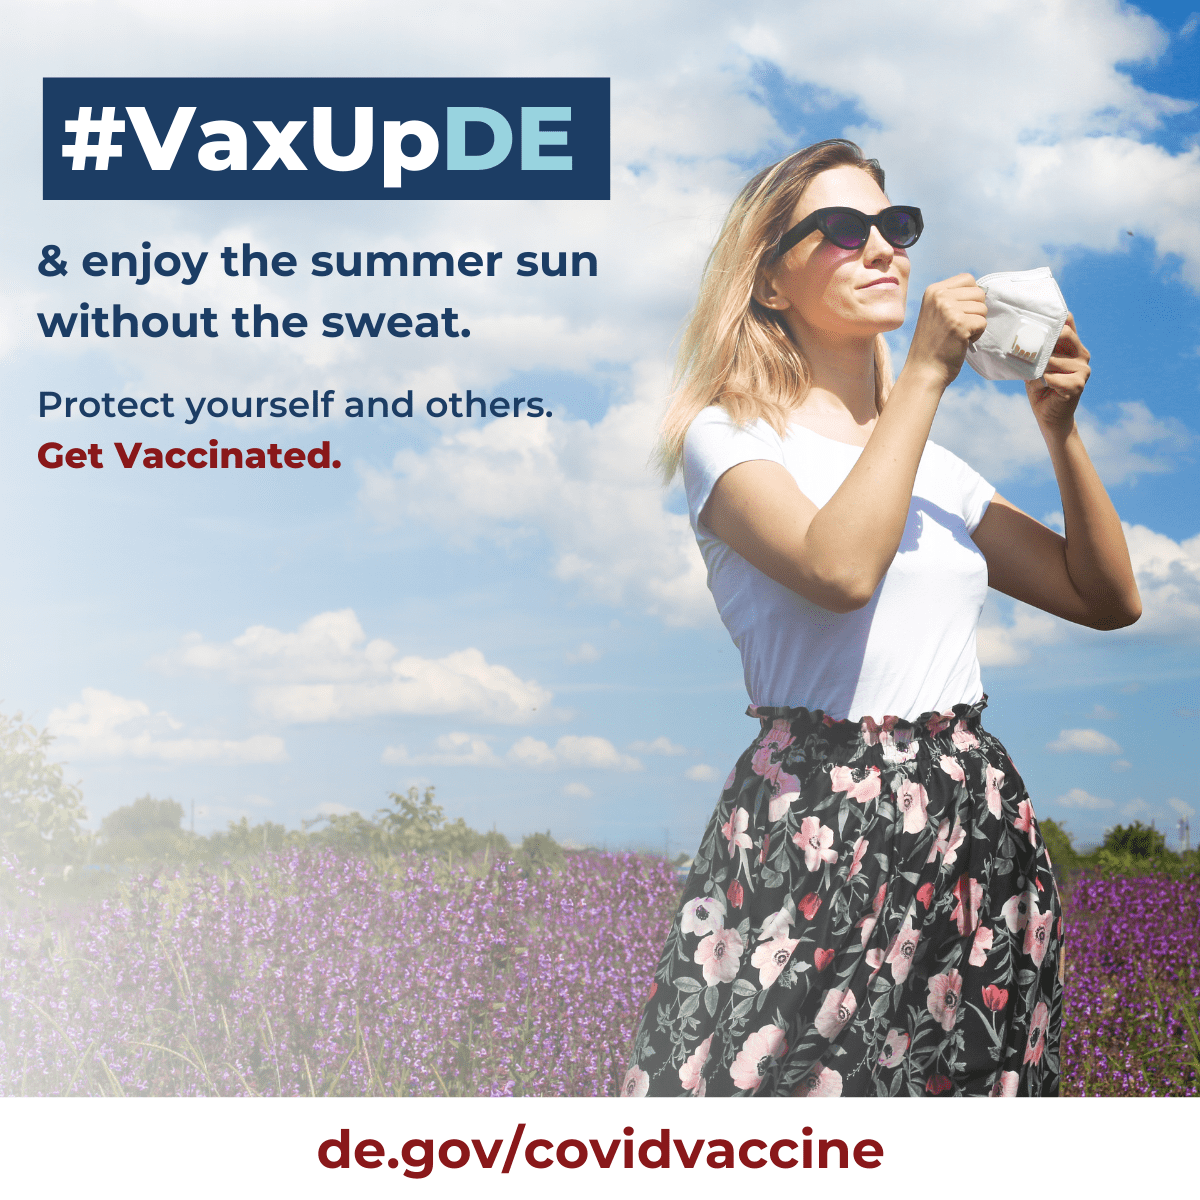 VaxUpDE and enjoy the summer sun without the sweat. Protect yourself and others. Get vaccinated. A woman smiling outside in a garden of flowers with out a mask on.